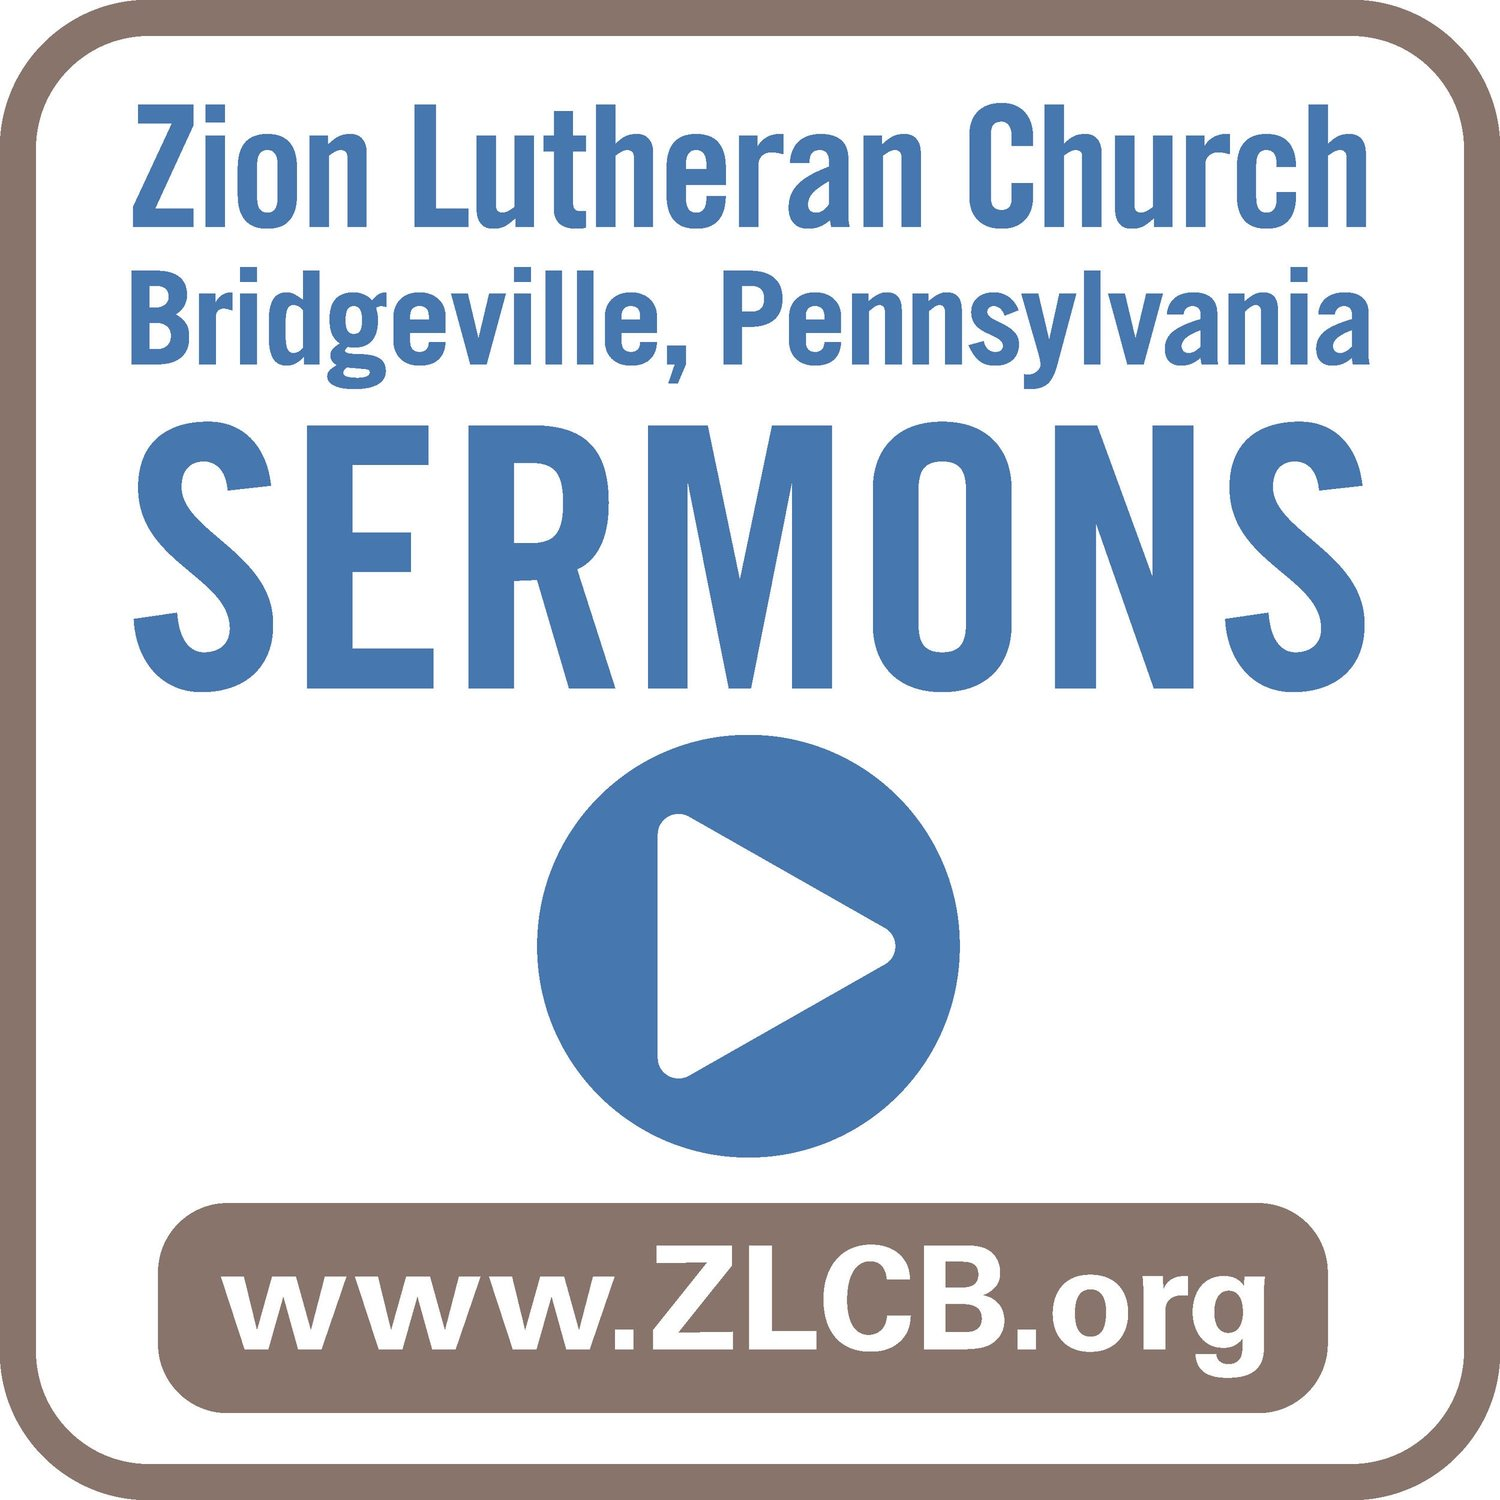 Readings And Sermon: Sunday July 14, 2019 Sermons From Zion